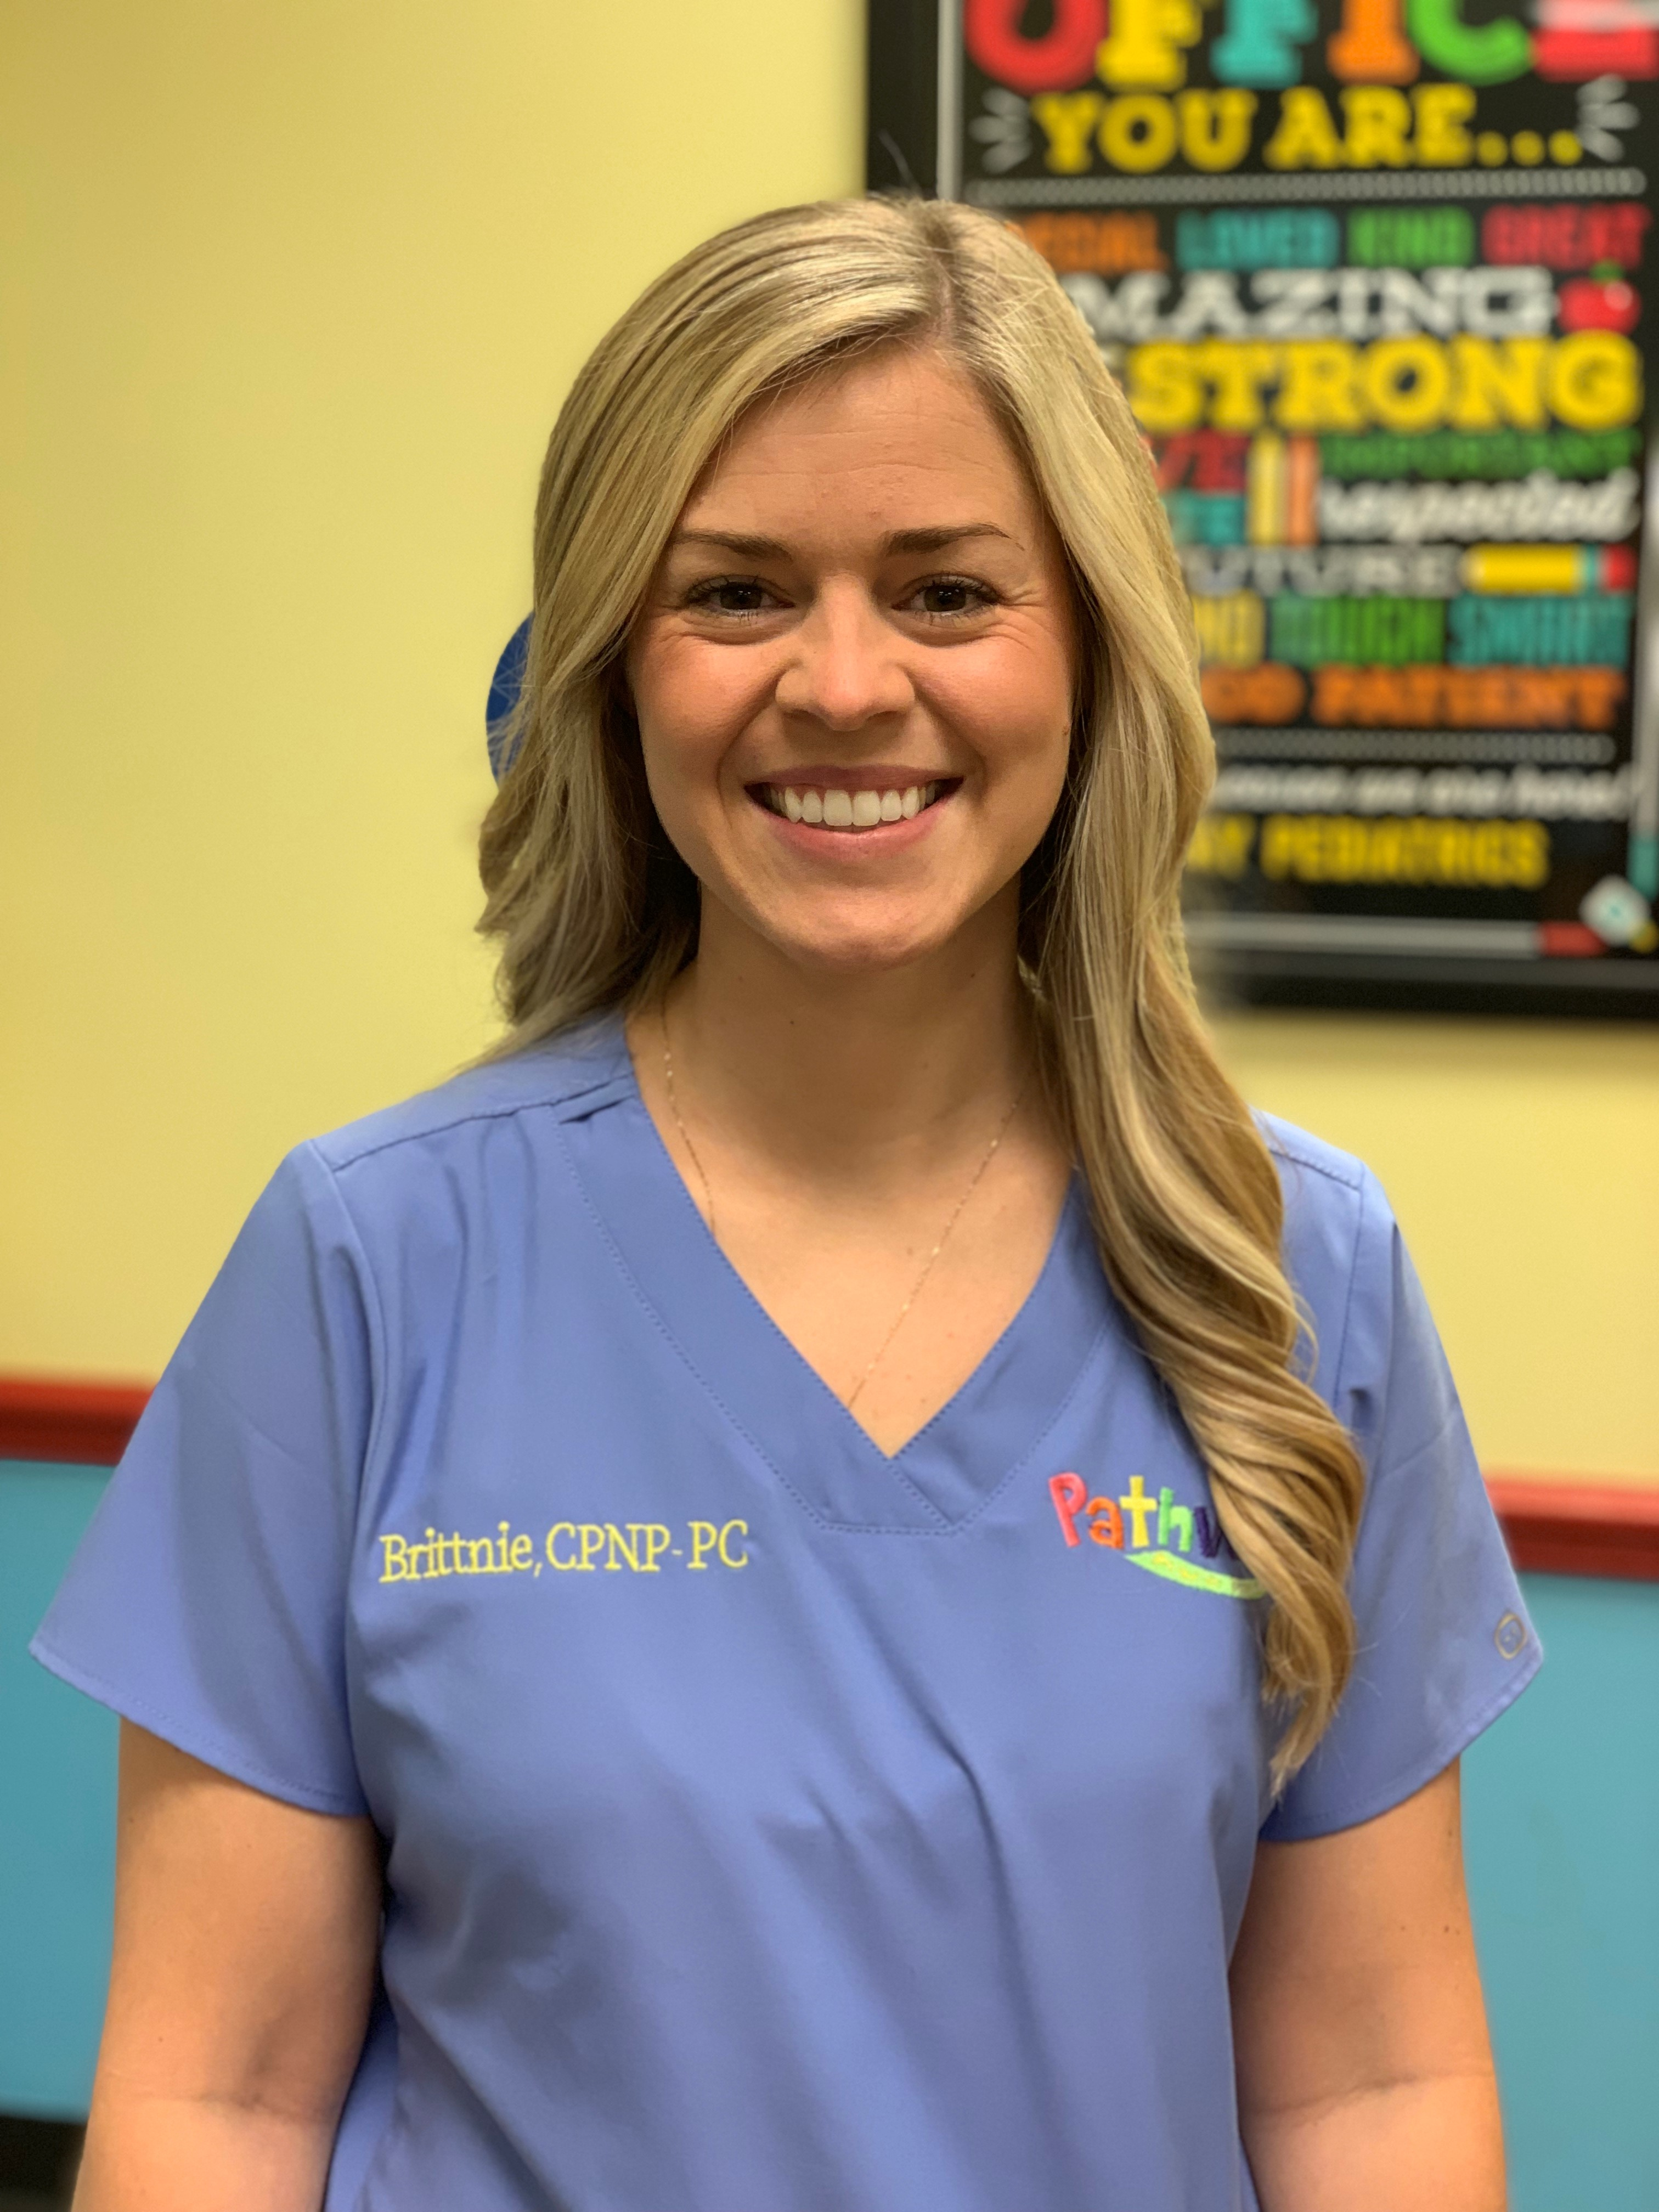 We are so very excited to introduce you to Brittnie Duff, CPNP!